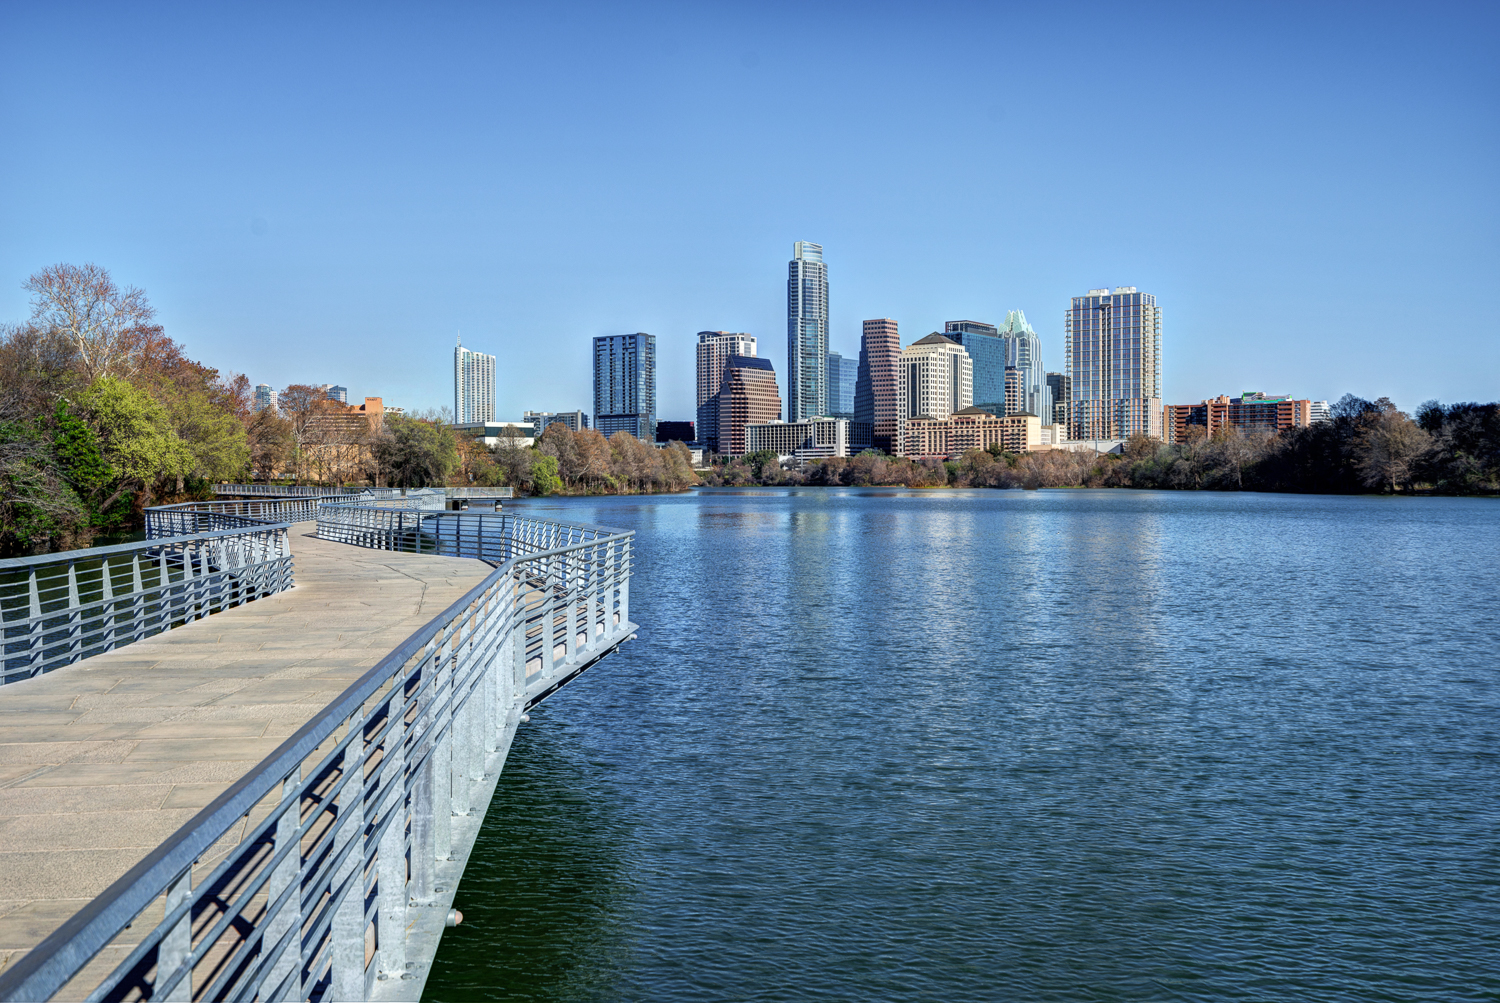 Downtown Austin with Walkway